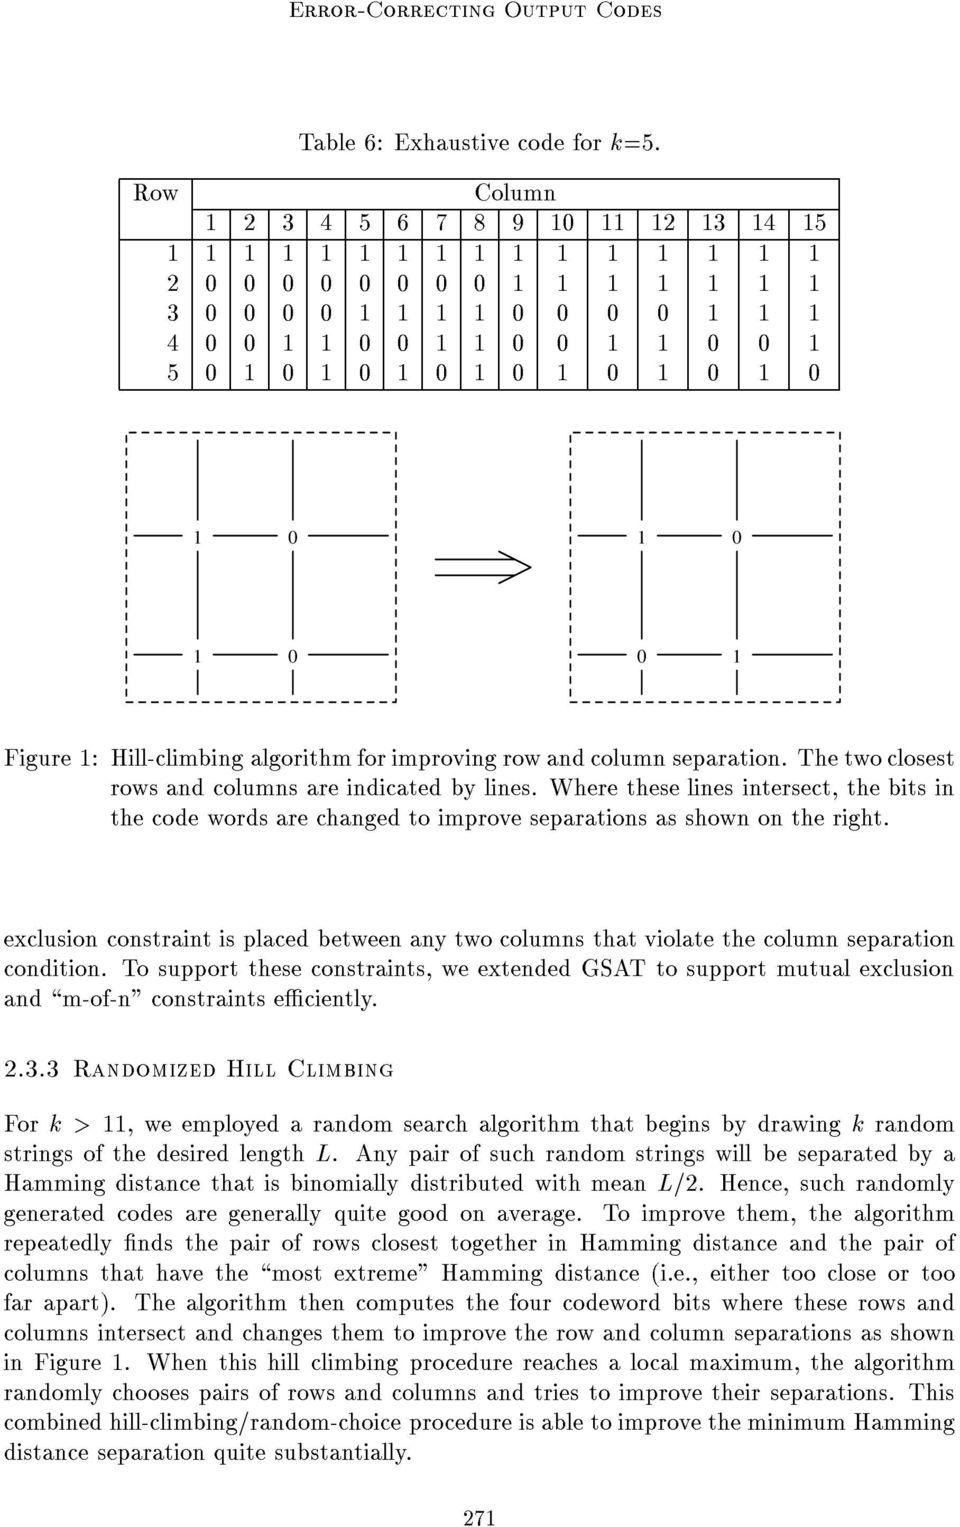 1 0 1 0 1 0 1 0 1 0 0 1 Figure 1: Hill-climbing algorithm for improving row and column separation. The two closest rows and columns are indicated by lines.